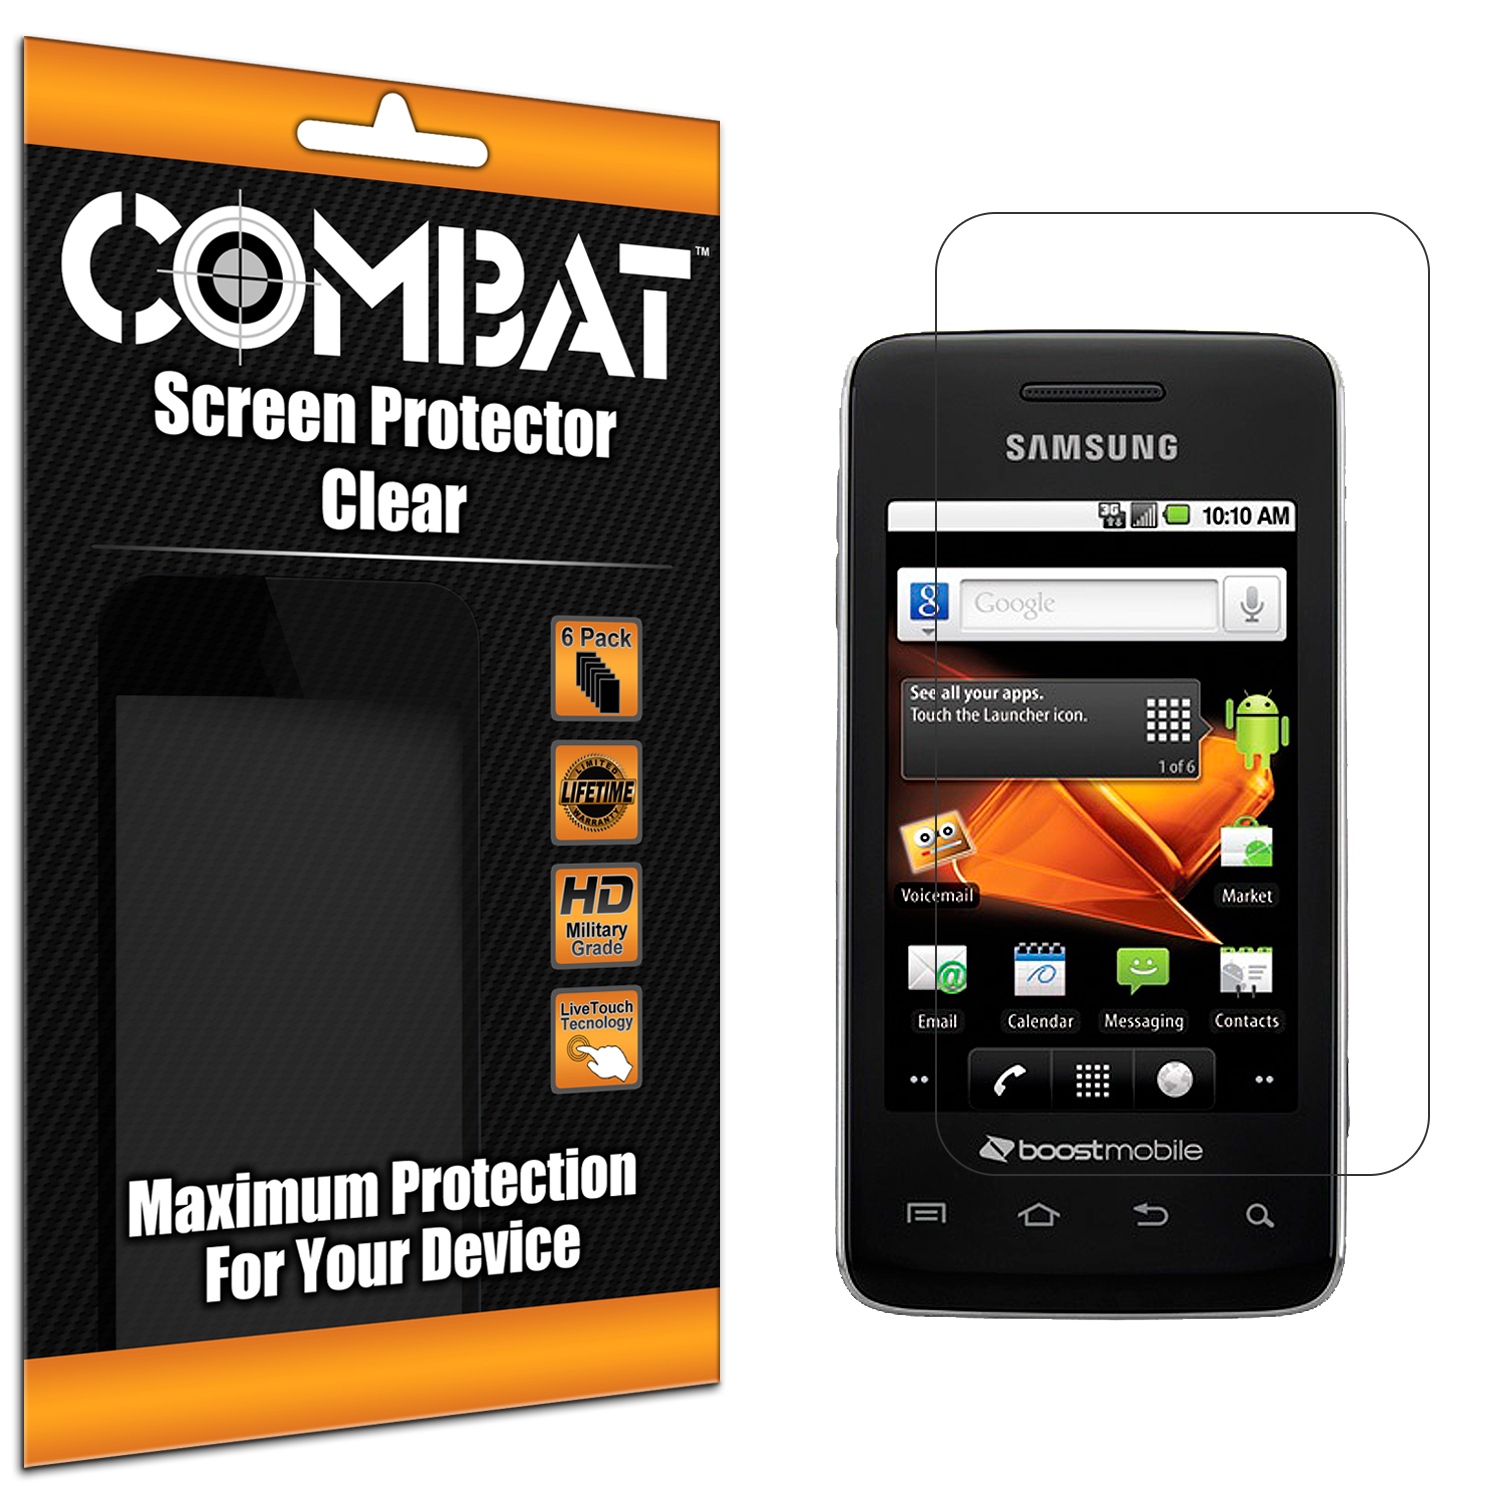 Samsung Galaxy Prevail M820 Combat 6 Pack HD Clear Screen Protector